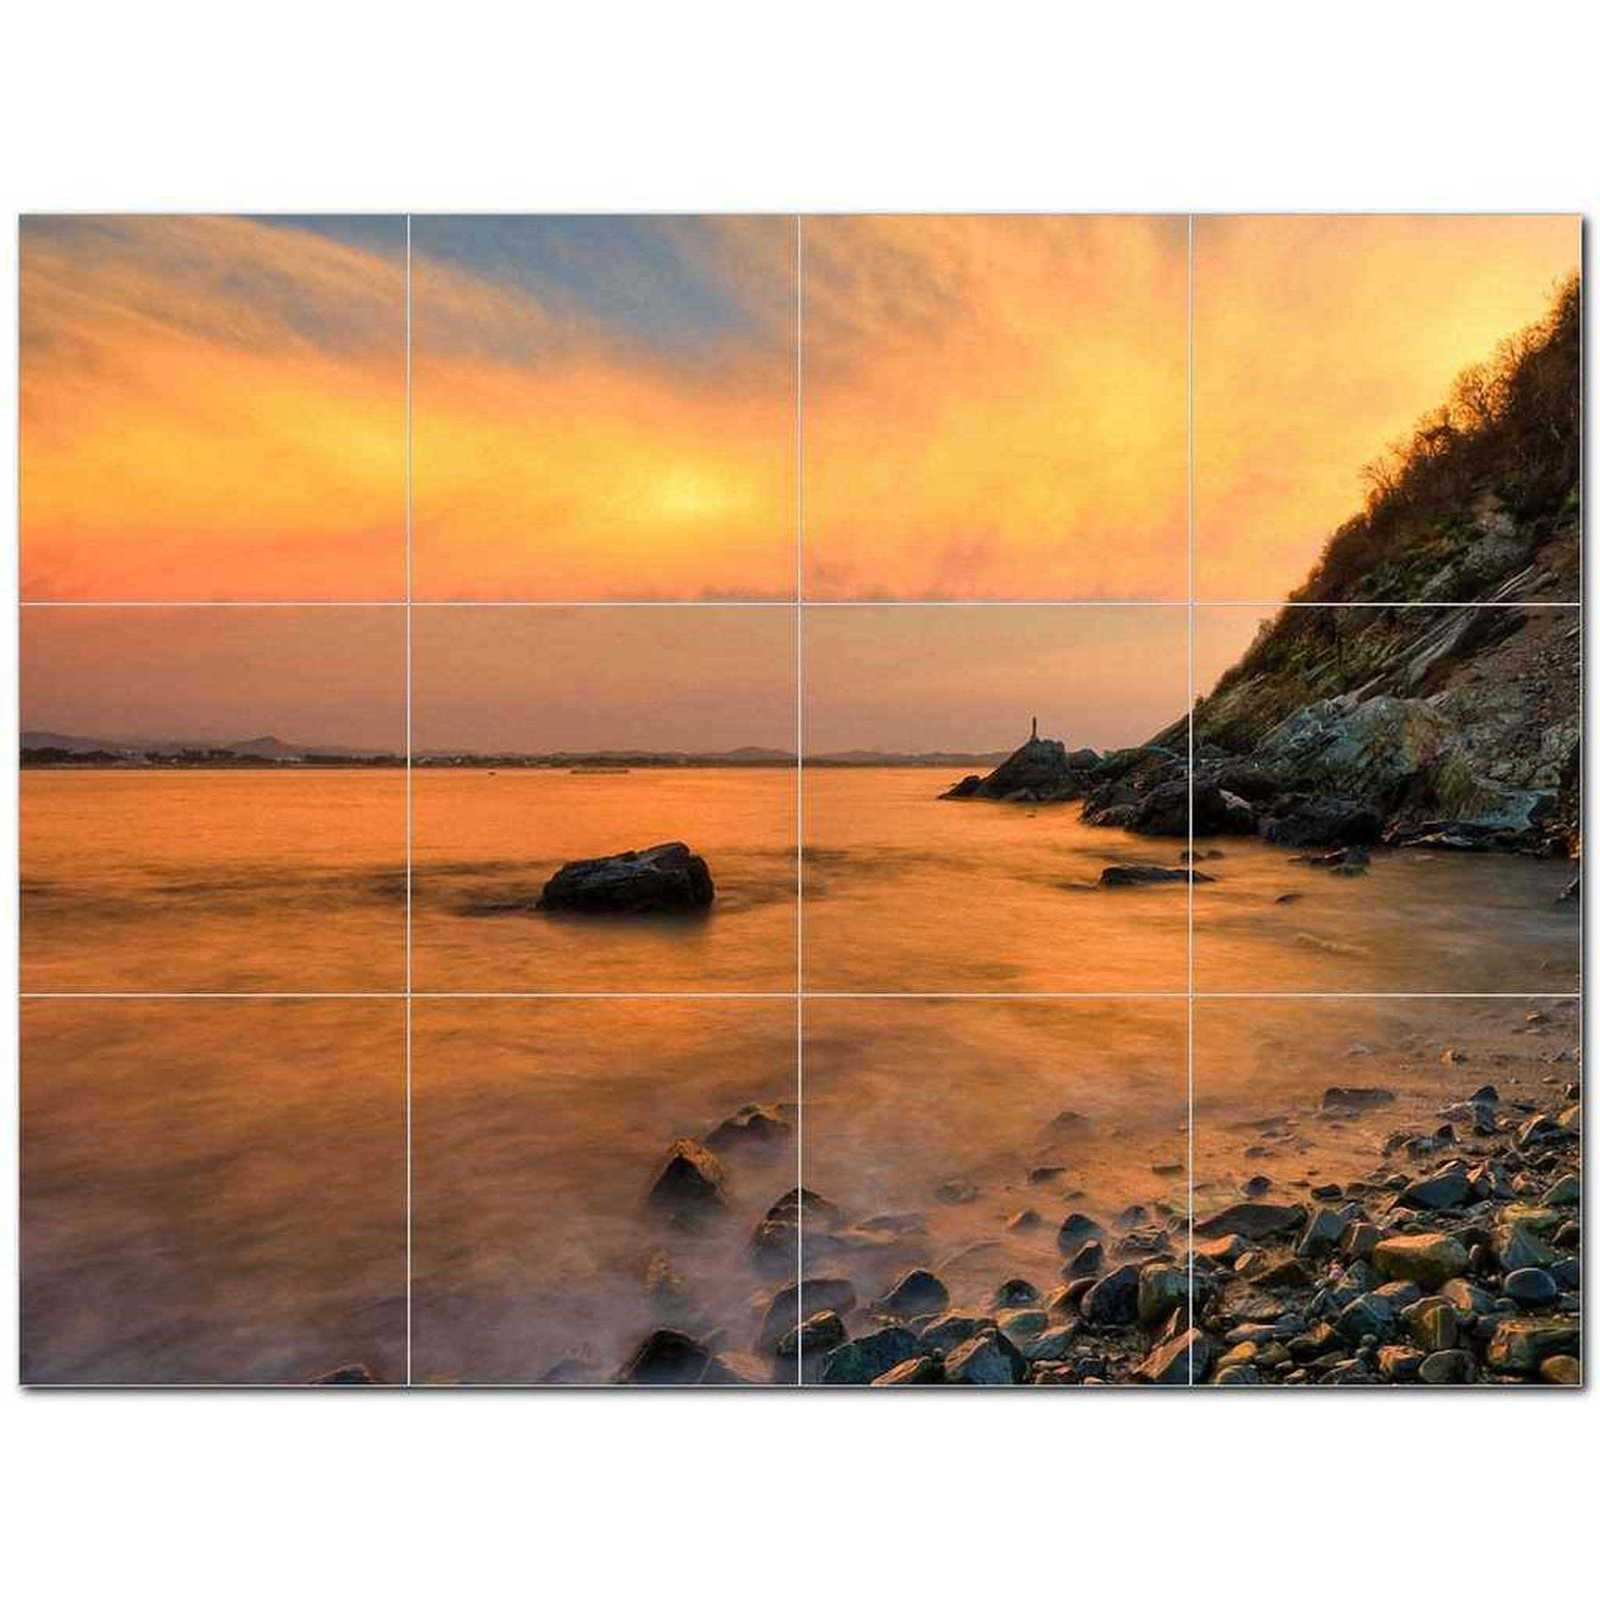 Primary image for Sunset Photo Ceramic Tile Mural Kitchen Backsplash Bathroom Shower BAZ405902